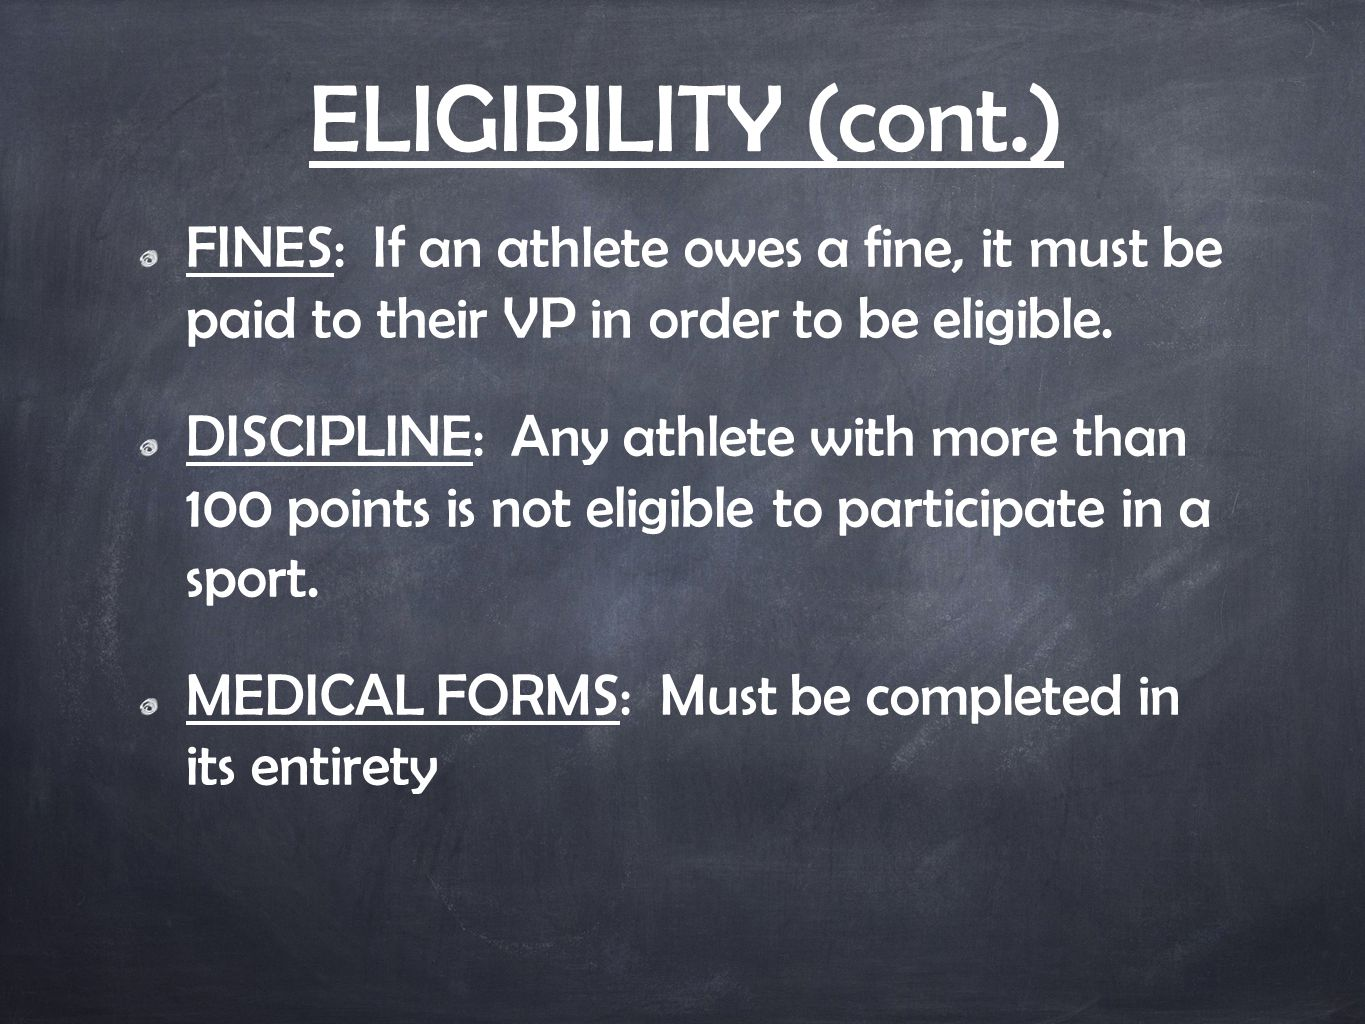 ELIGIBILITY (cont.) FINES: If an athlete owes a fine, it must be paid to their VP in order to be eligible. DISCIPLINE: Any athlete with more than 100